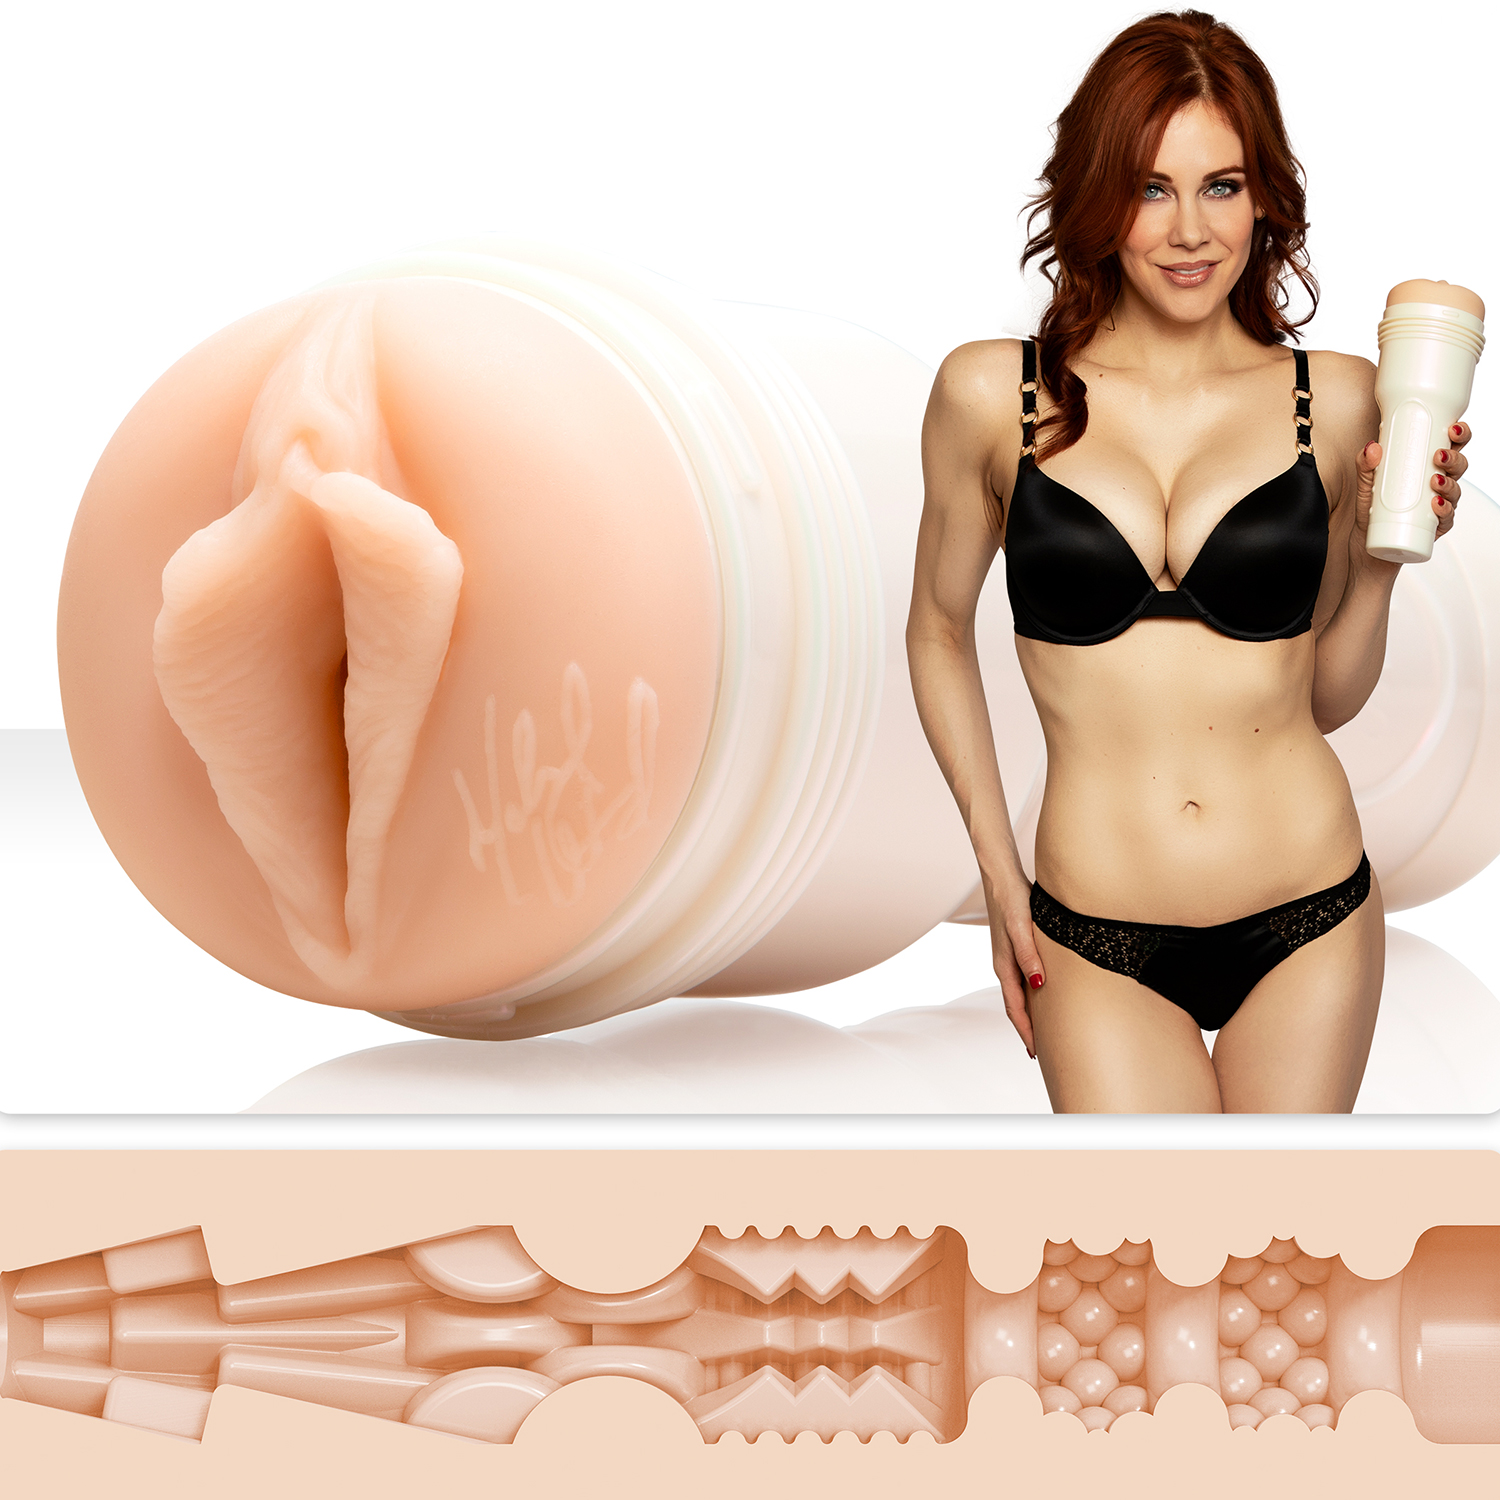 Fleshlight Girls Maitland Ward Toy Meets World